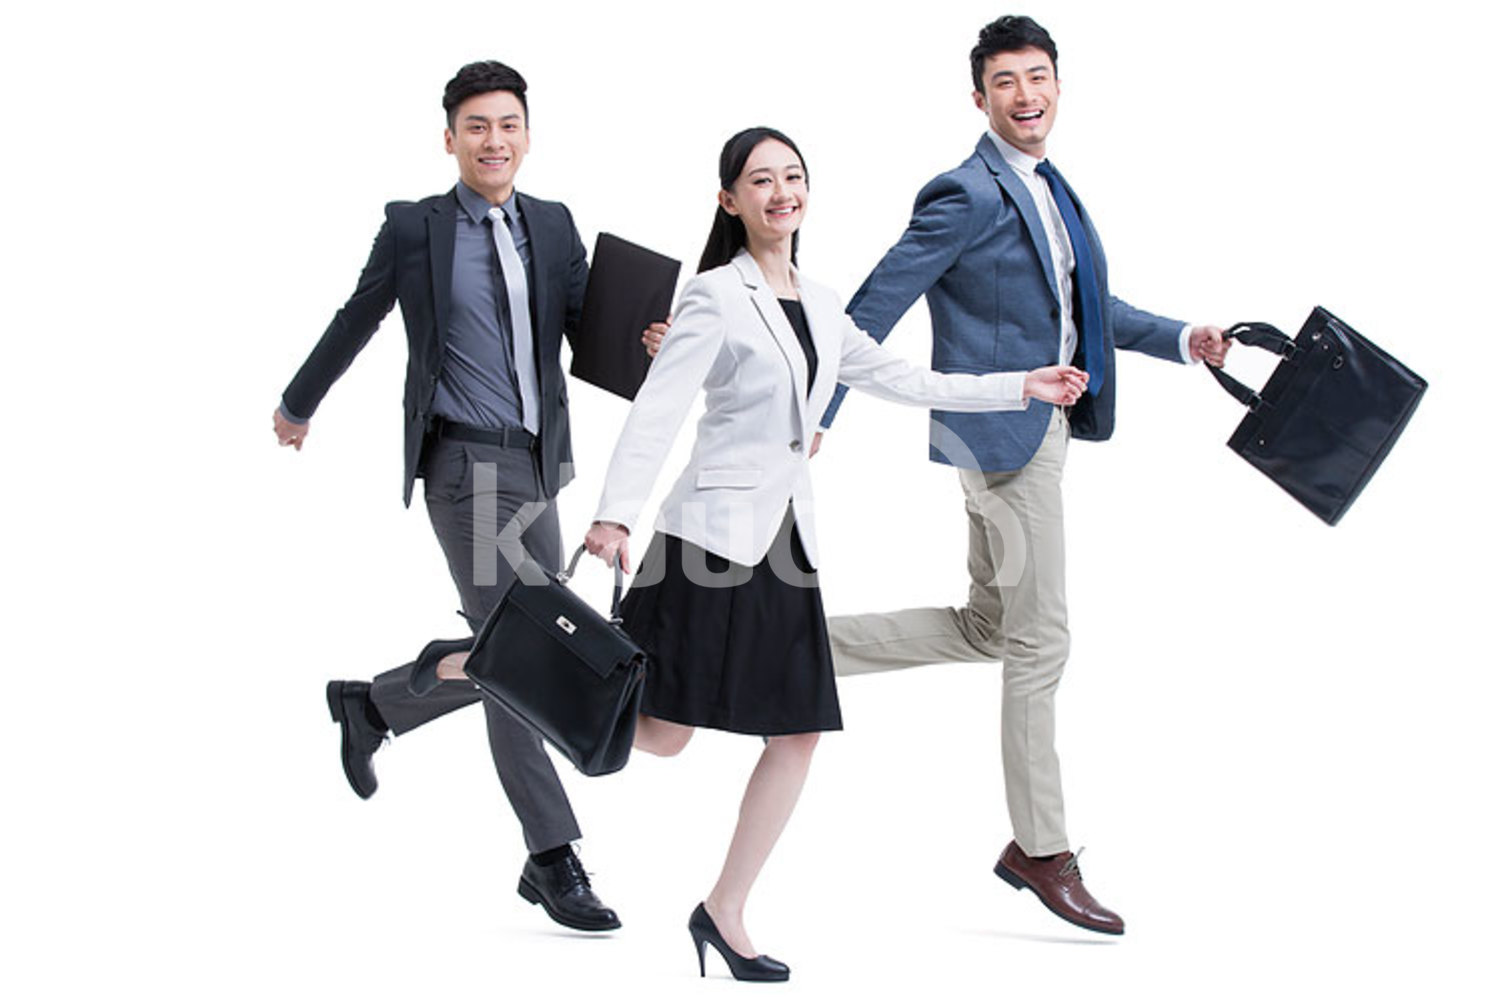 Excited Chinese business people on the move